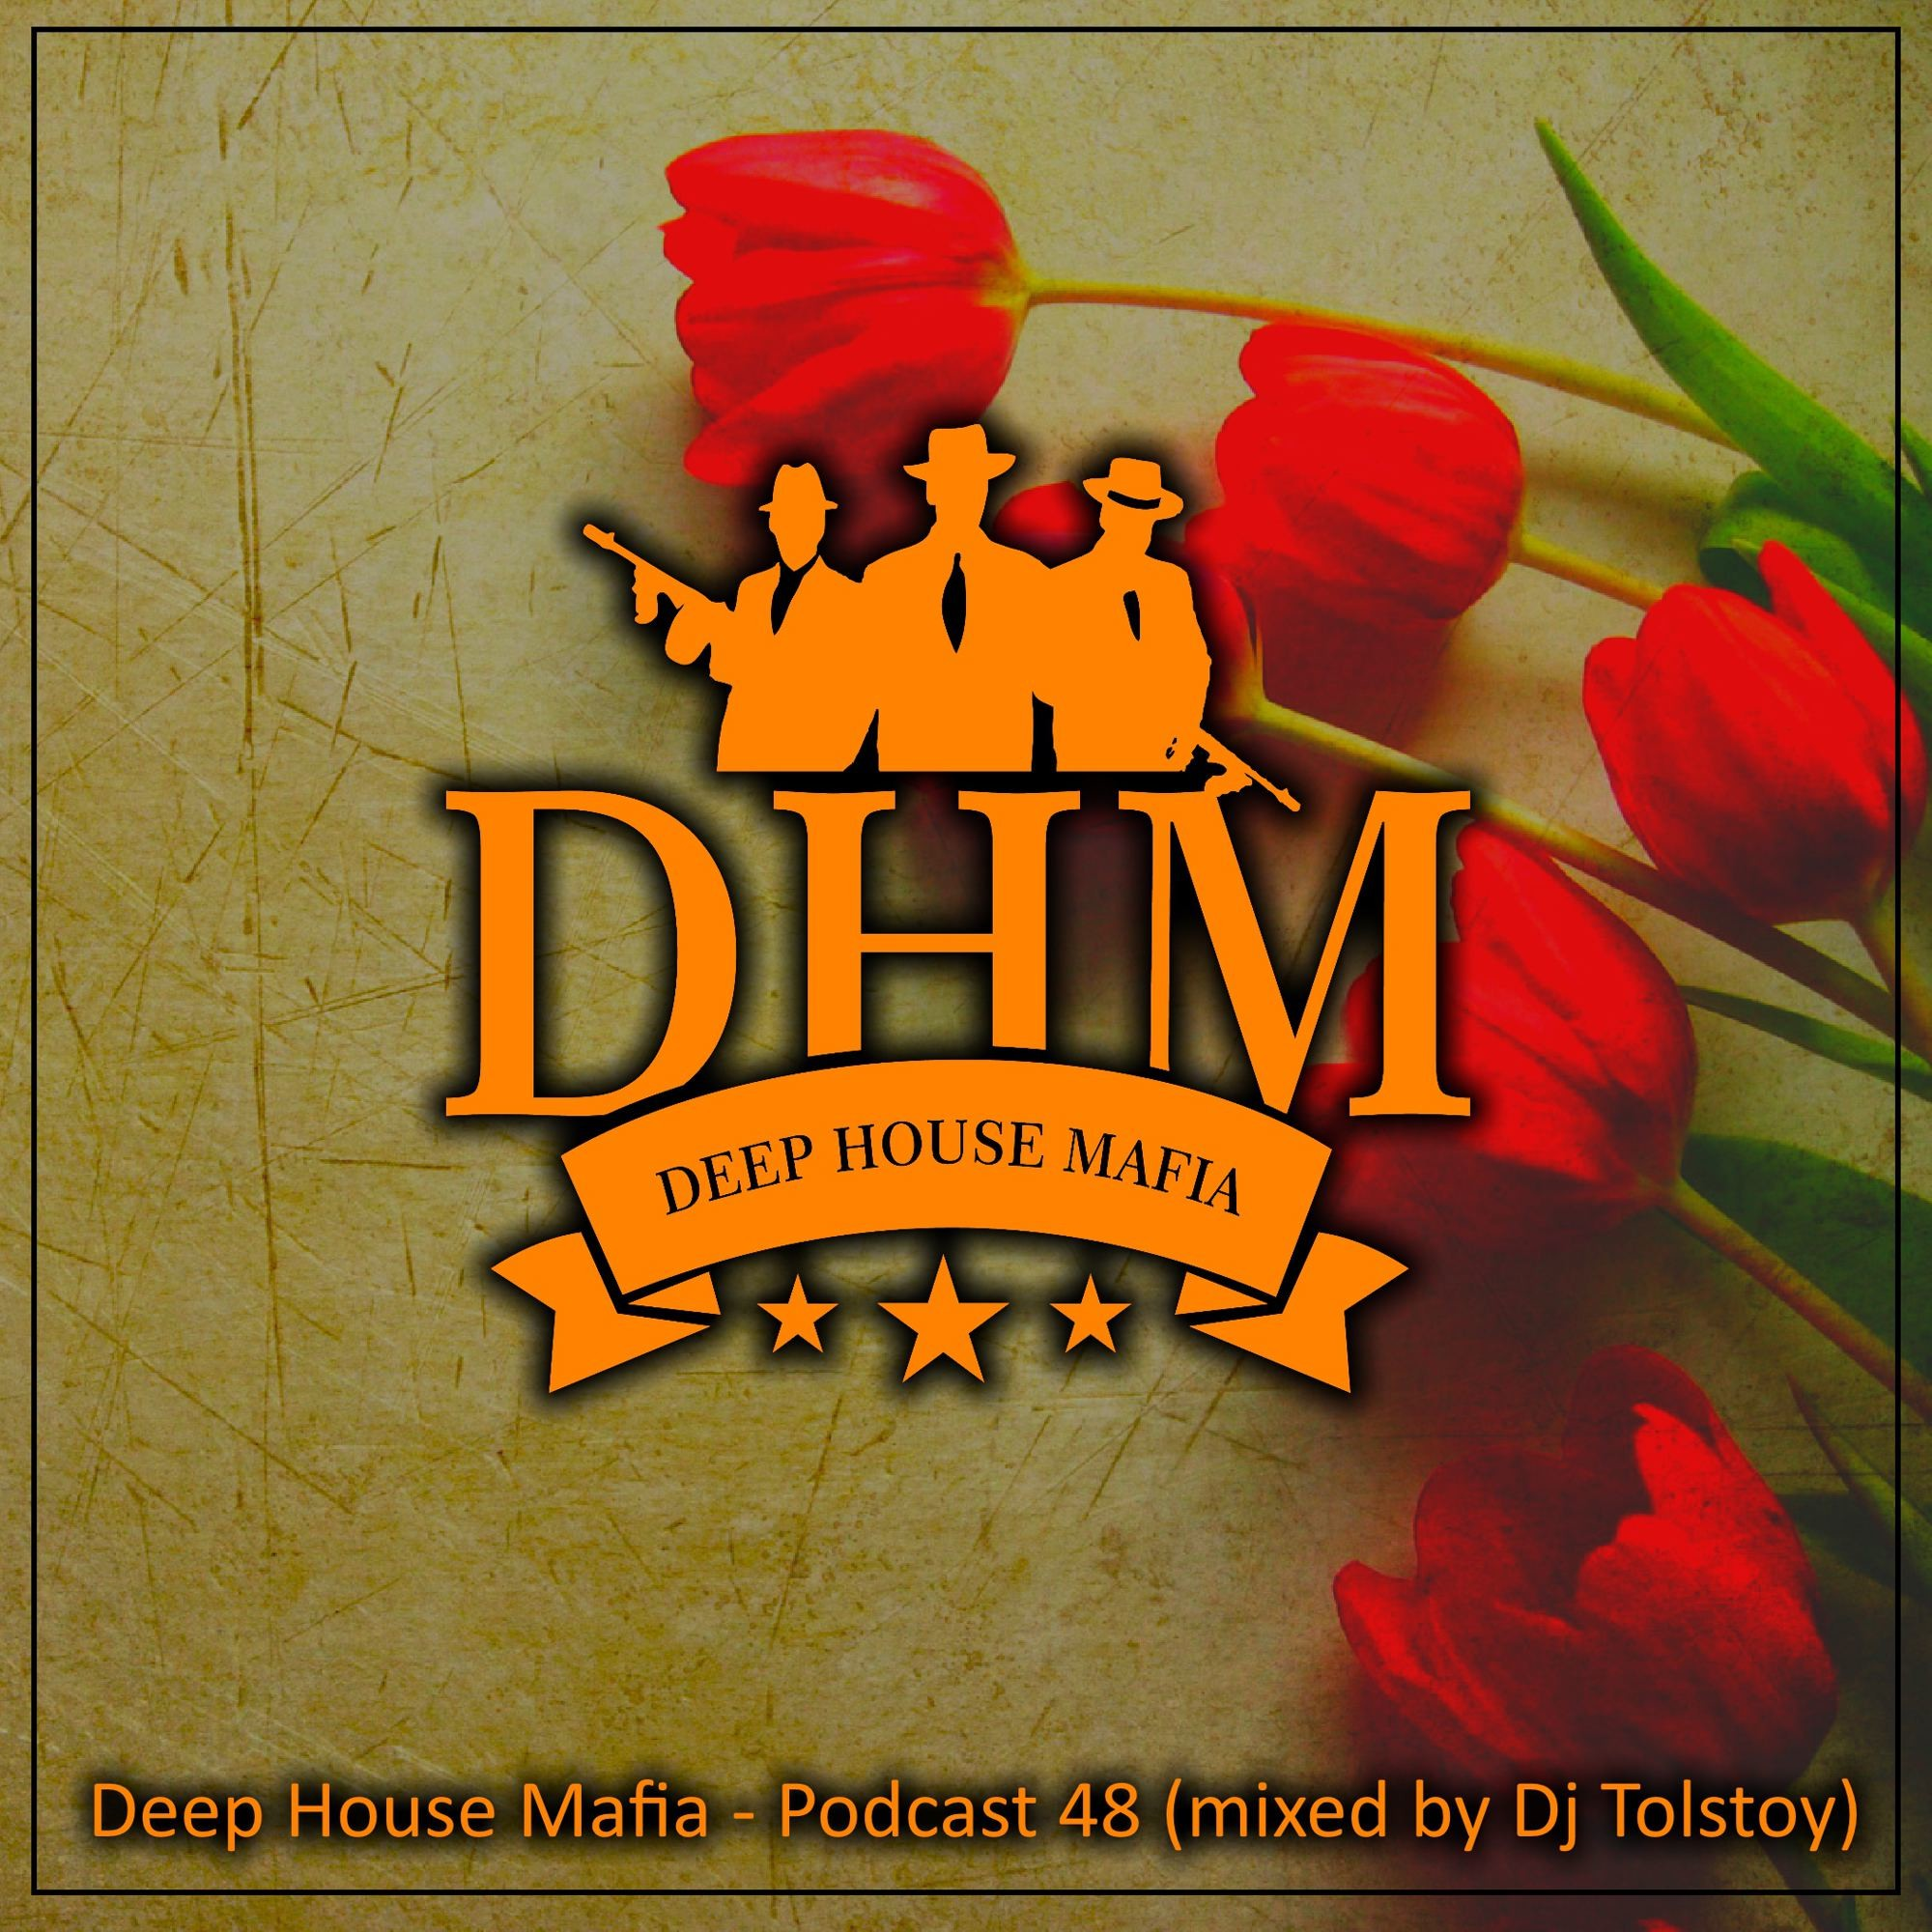 Deep house mafia podcast 48 mixed by dj tolstoy for Deep house 2000